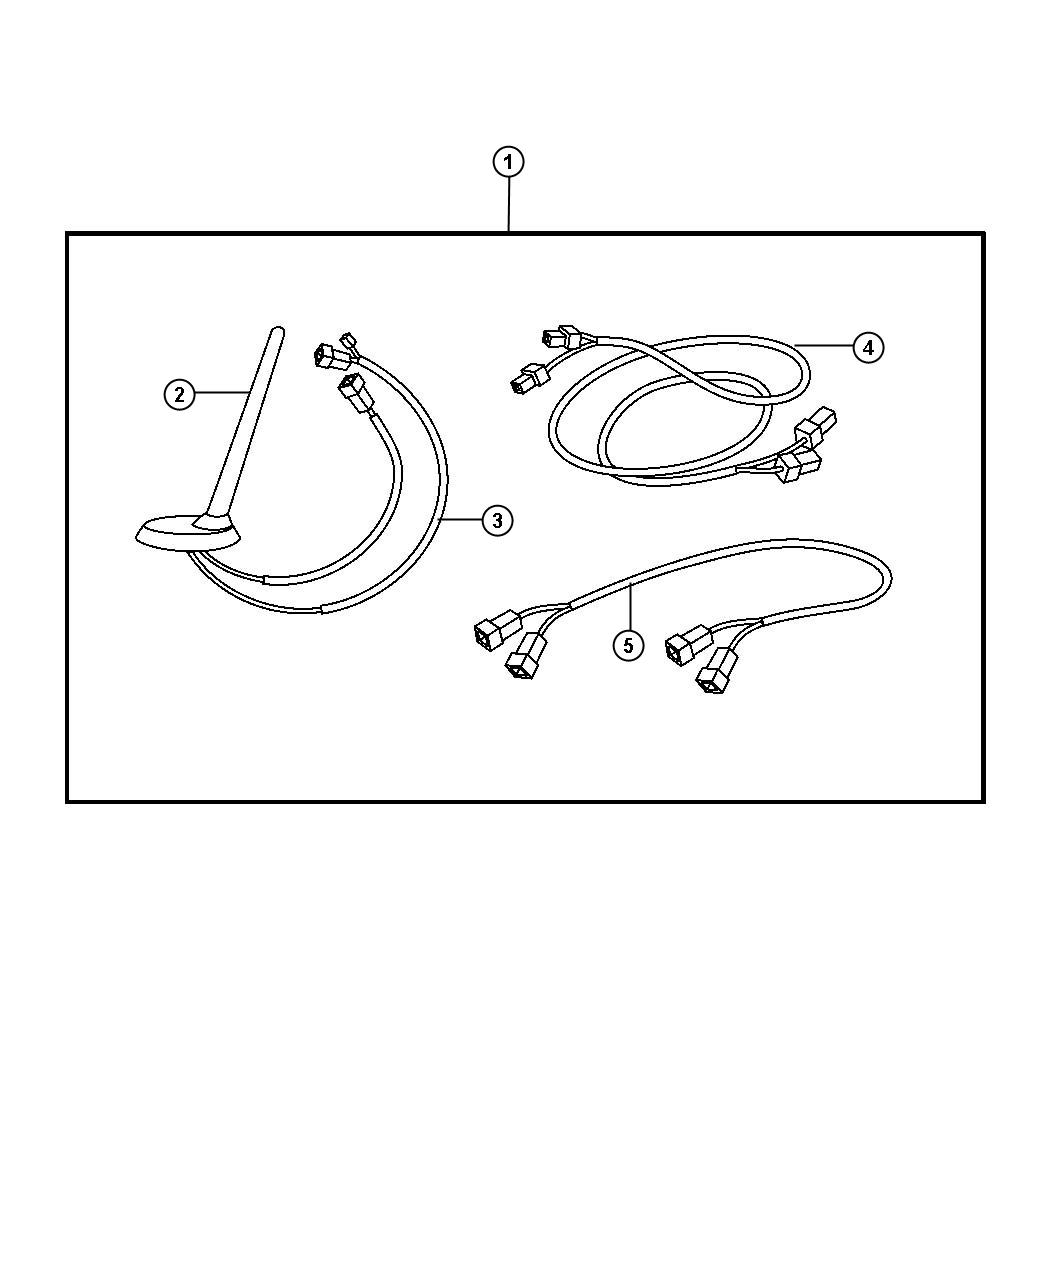 Dodge Nitro Antenna Base Used For Base Cable And